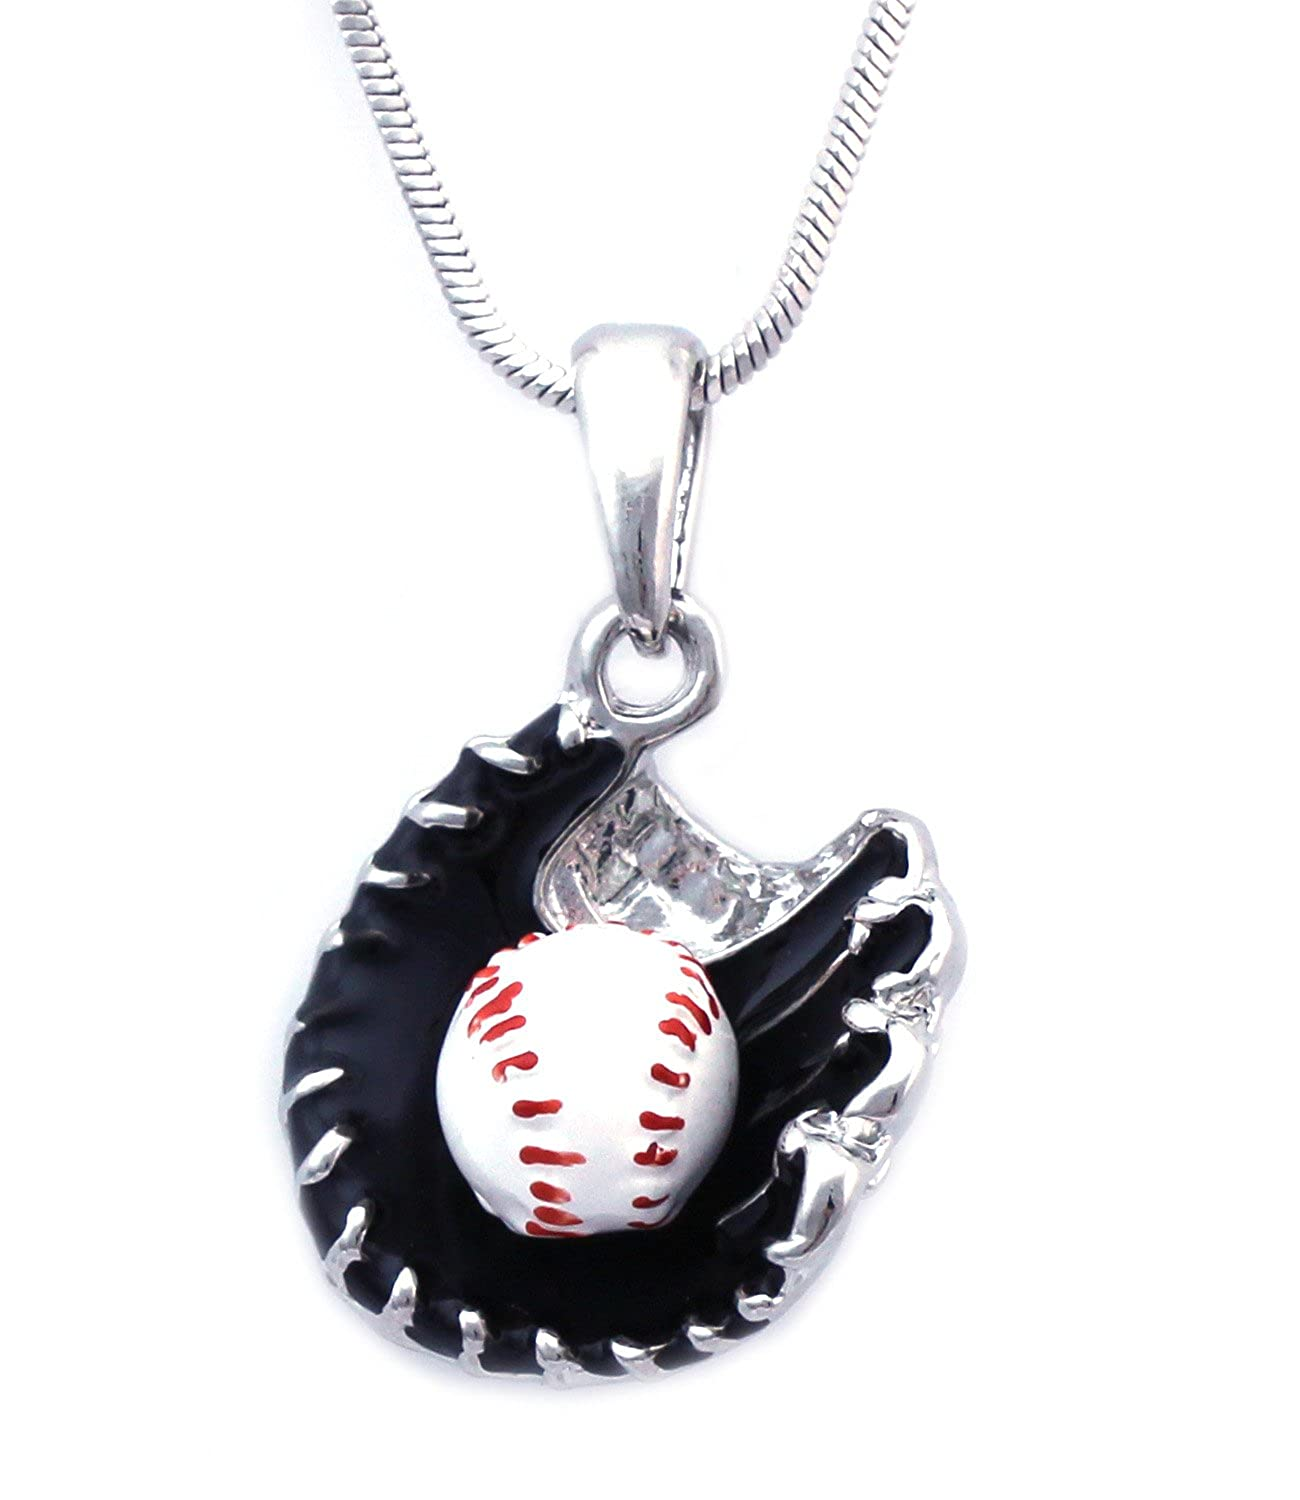 pendant jewellery mens fancy baseball pitcher necklace script ksvhs theme silver